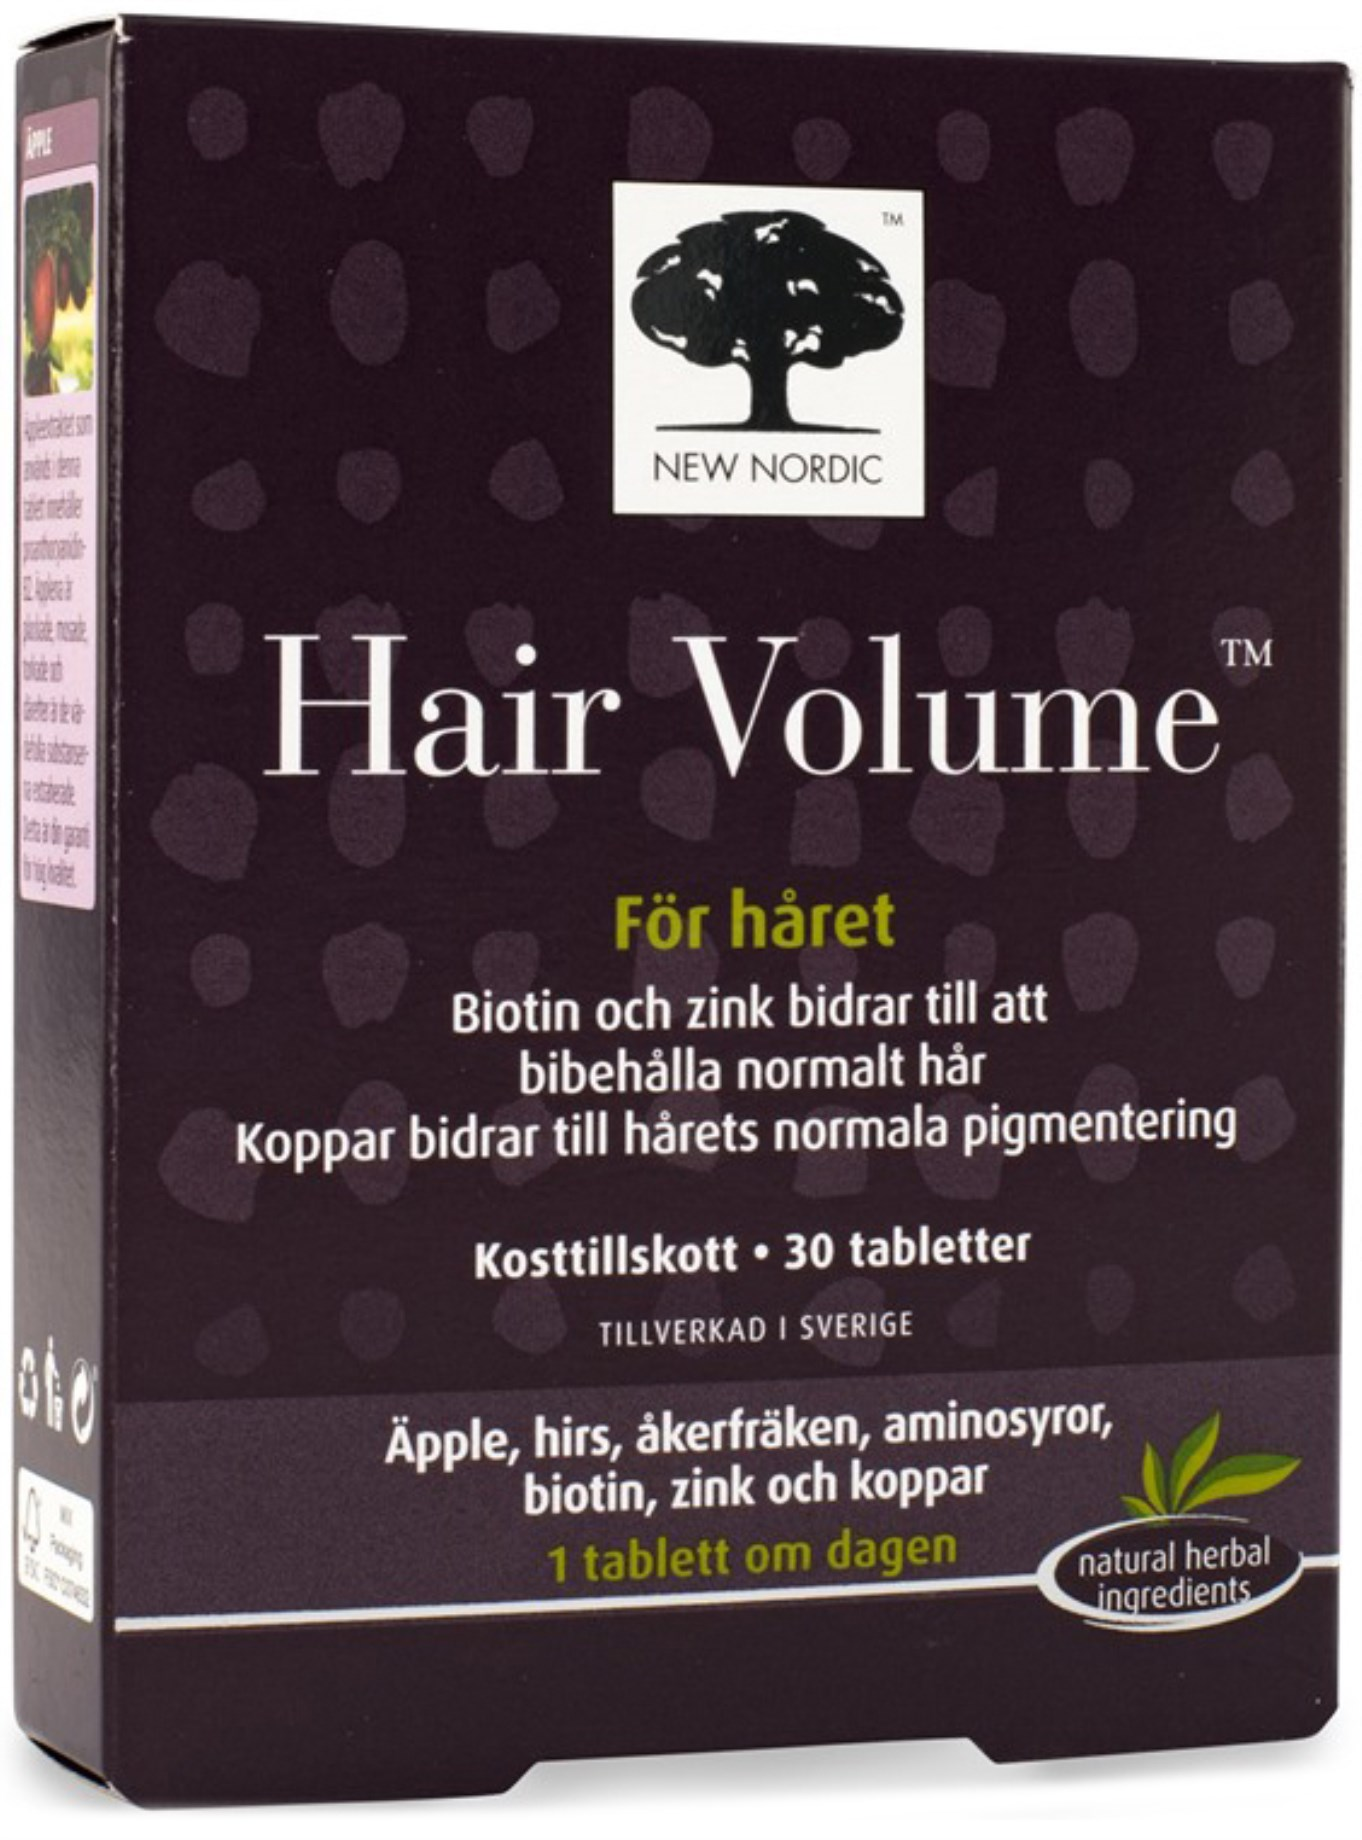 New Nordic Hair Volume,  - New Nordic